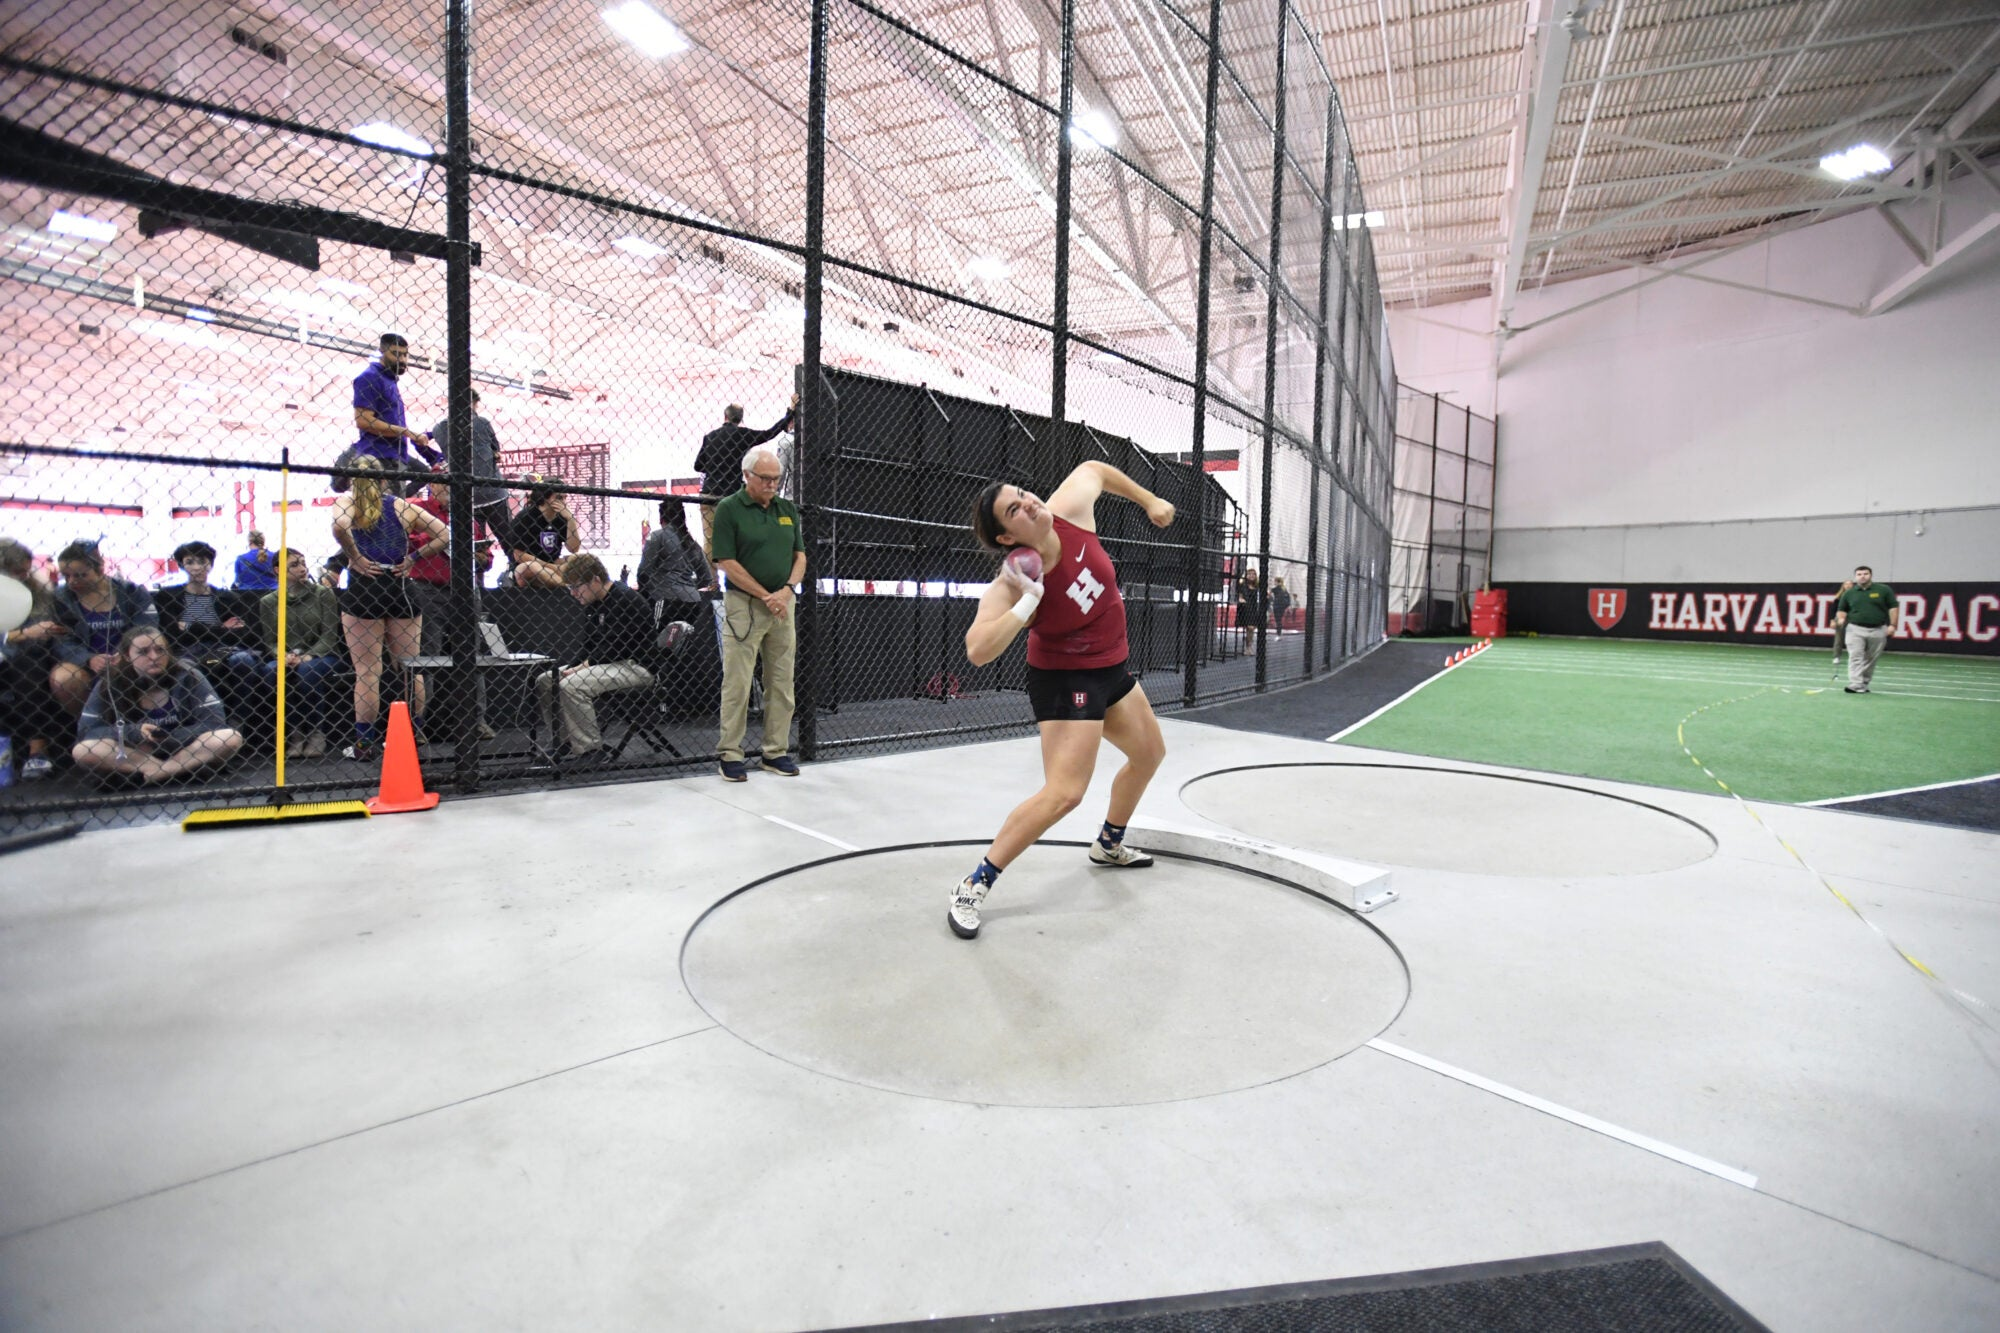 A woman with a small ball on her shoulder ready to throw.